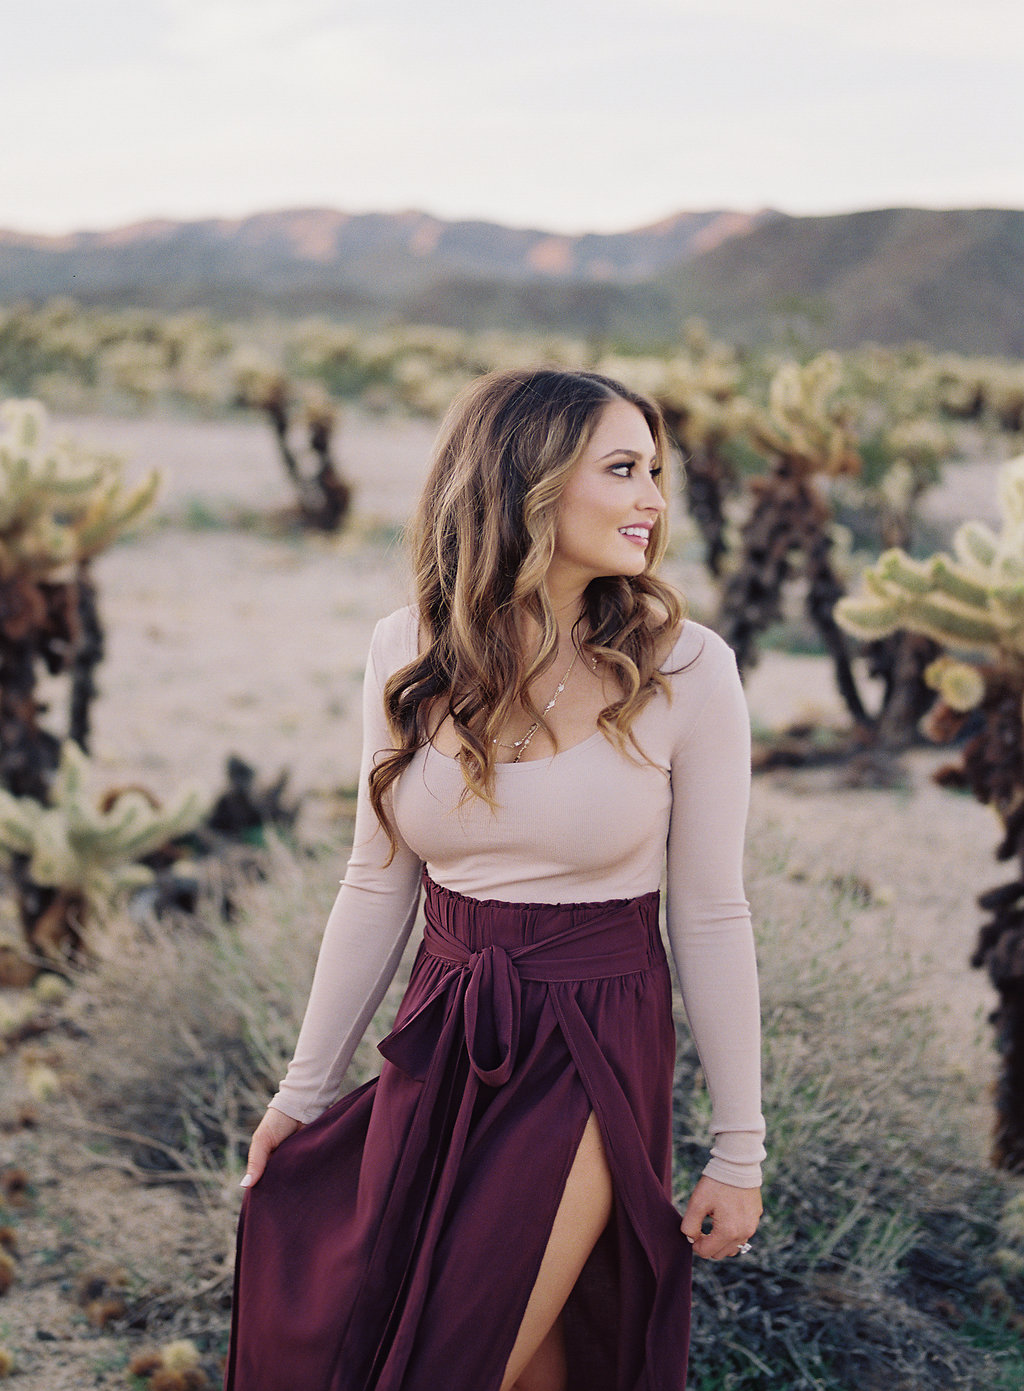 Maxie Elle | Joshua Tree Engagement Photos - Our Proposal Story by popular Orange County blogger Maxie Elle